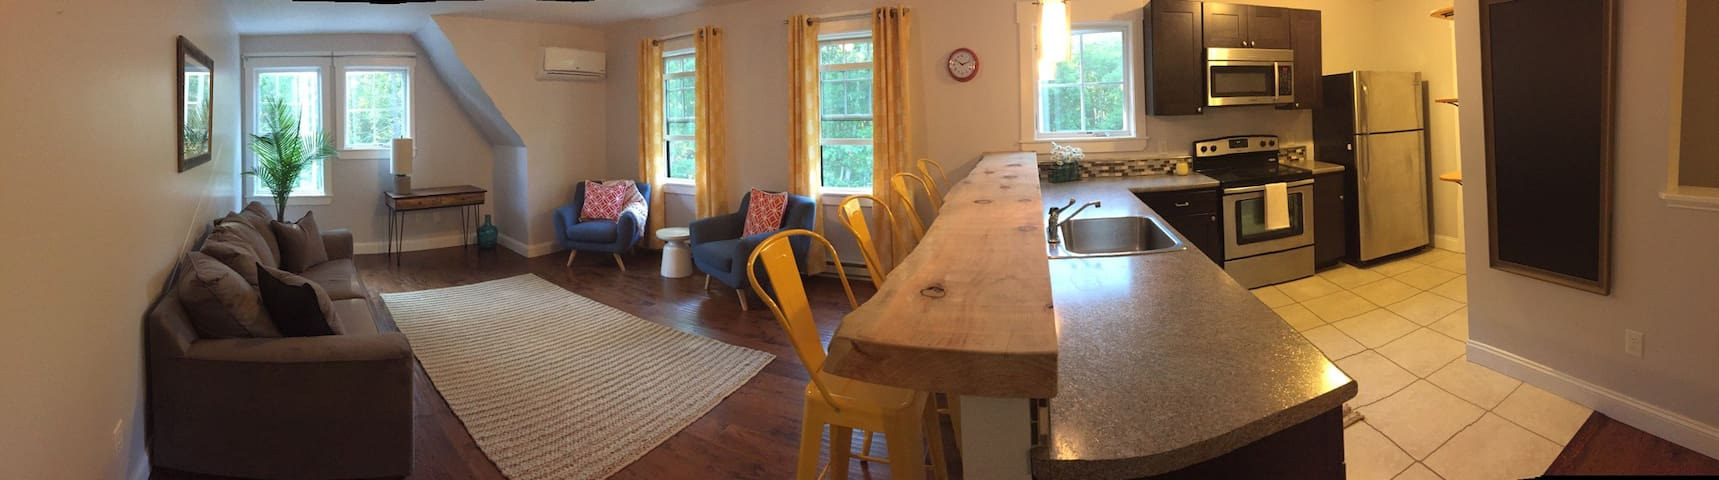 Bright, Spacious and close to beach - Kennebunkport - Apartment